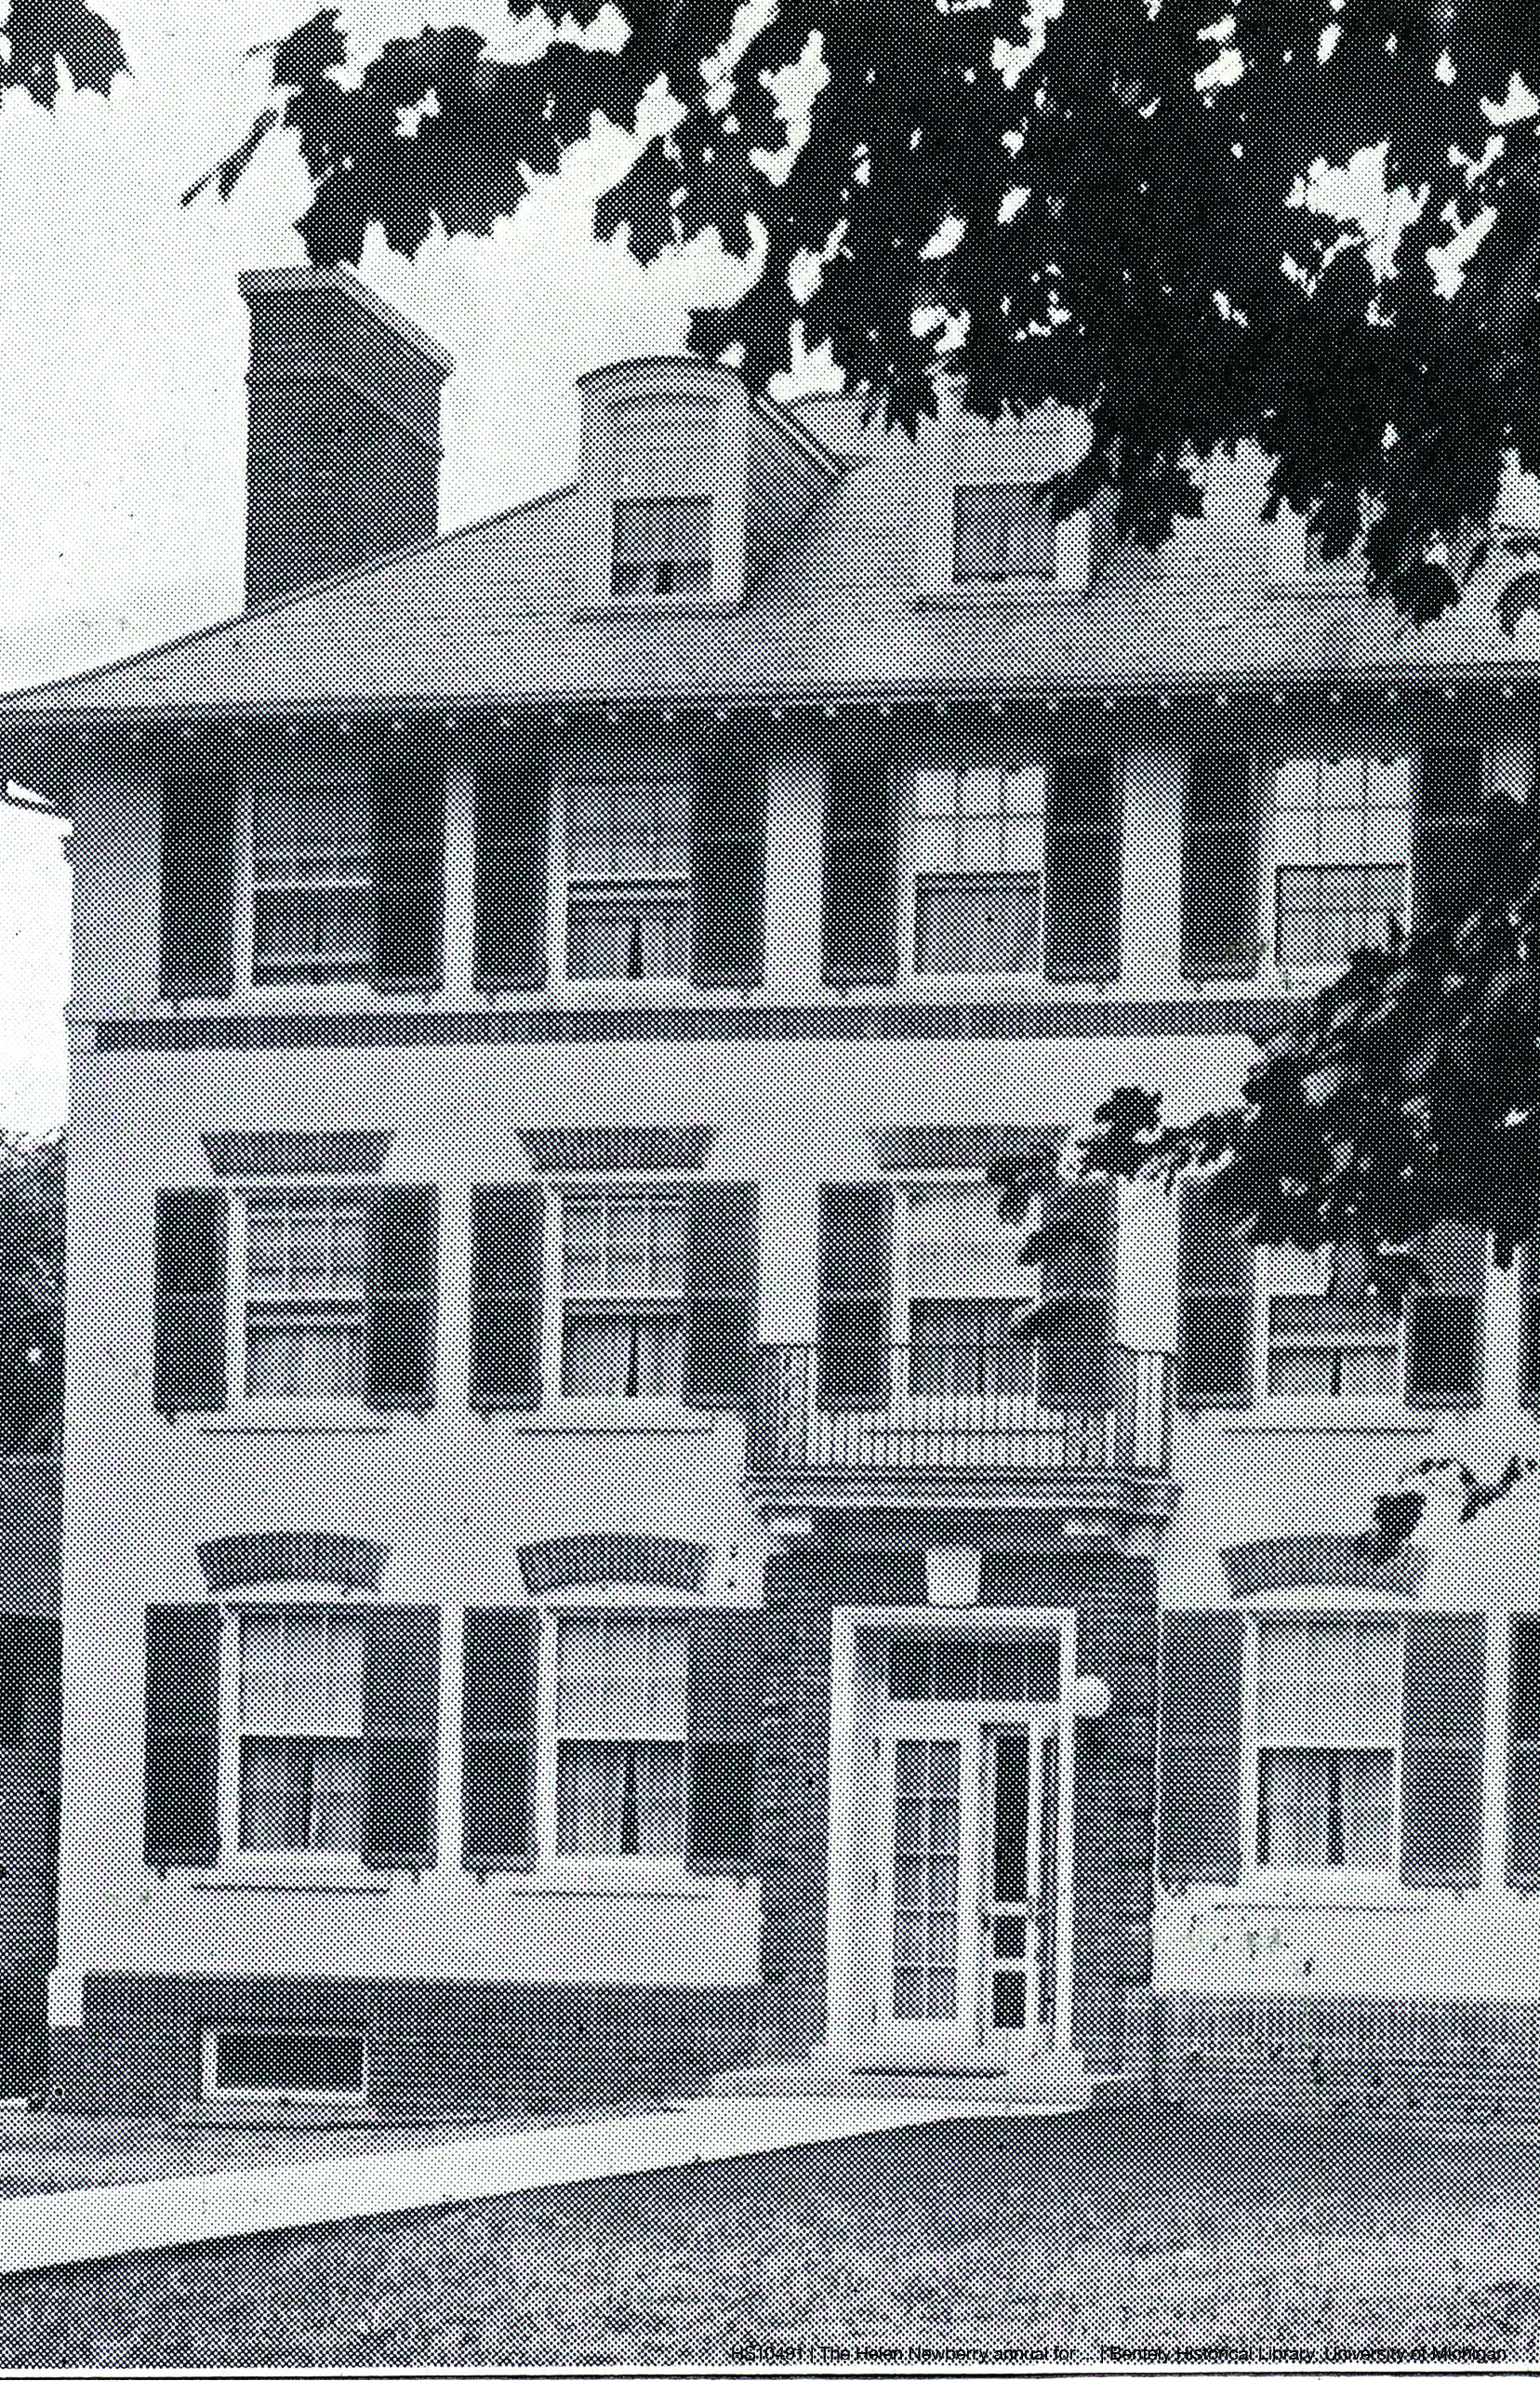 Photo of the Helen Newberry Residence Hall